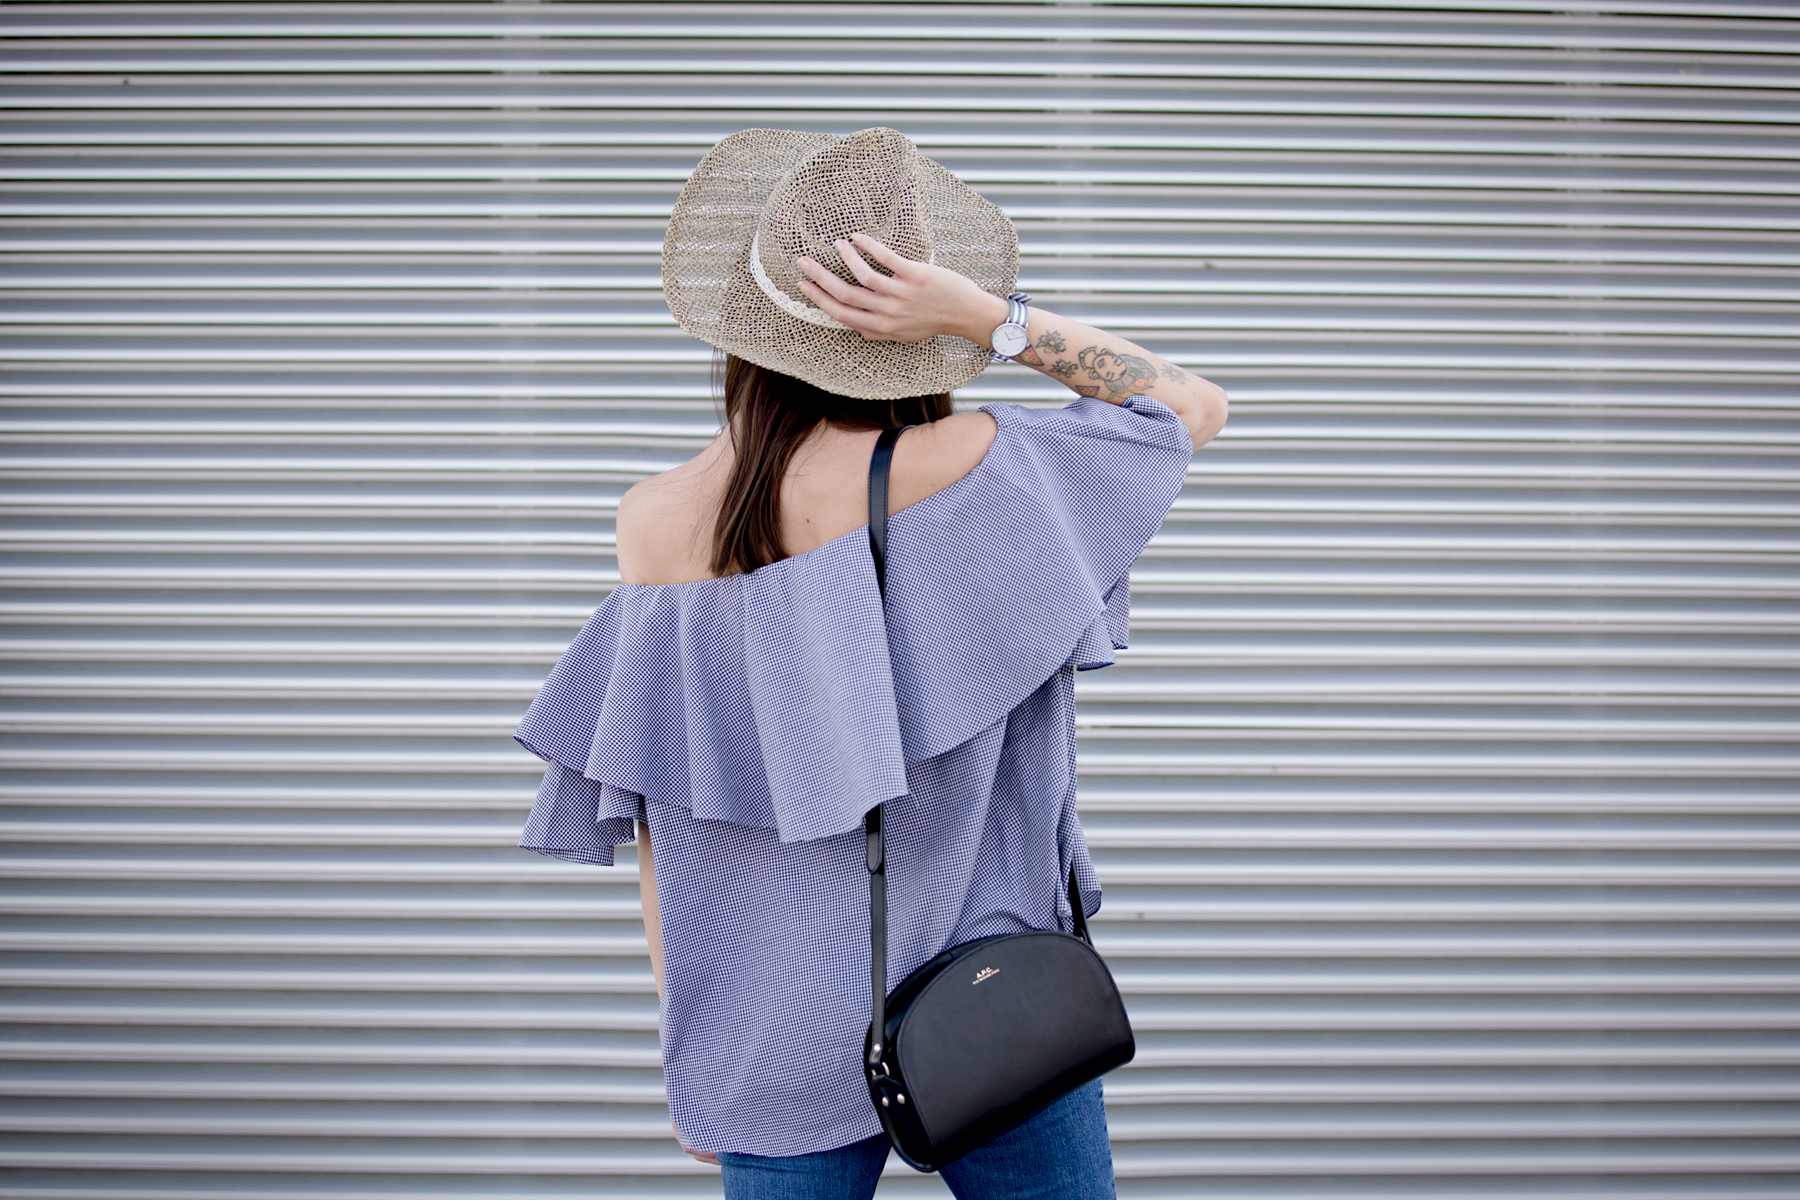 kapten&son watch mlm label off-shoulder blouse blue fringe jeans straw hat summer ootd look styling fashionblogger berlin modeblog cats & dogs ricarda schernus styleblogger 1